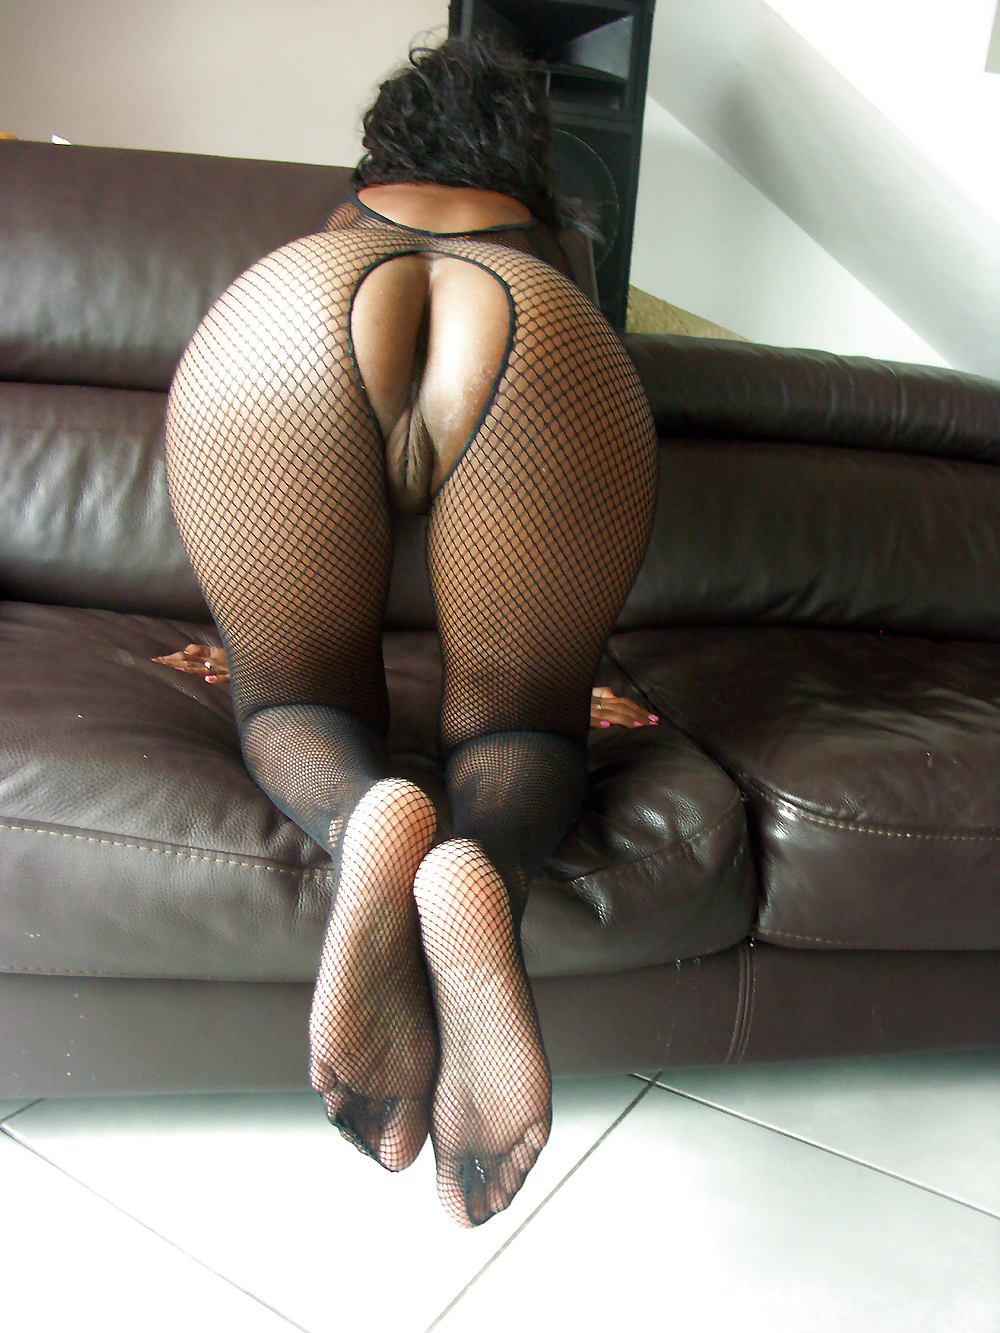 Black hot girls with big boods and butts African Porn Photos Large Photo 4 Sexy Black Hottie With Big Boobs And Ass